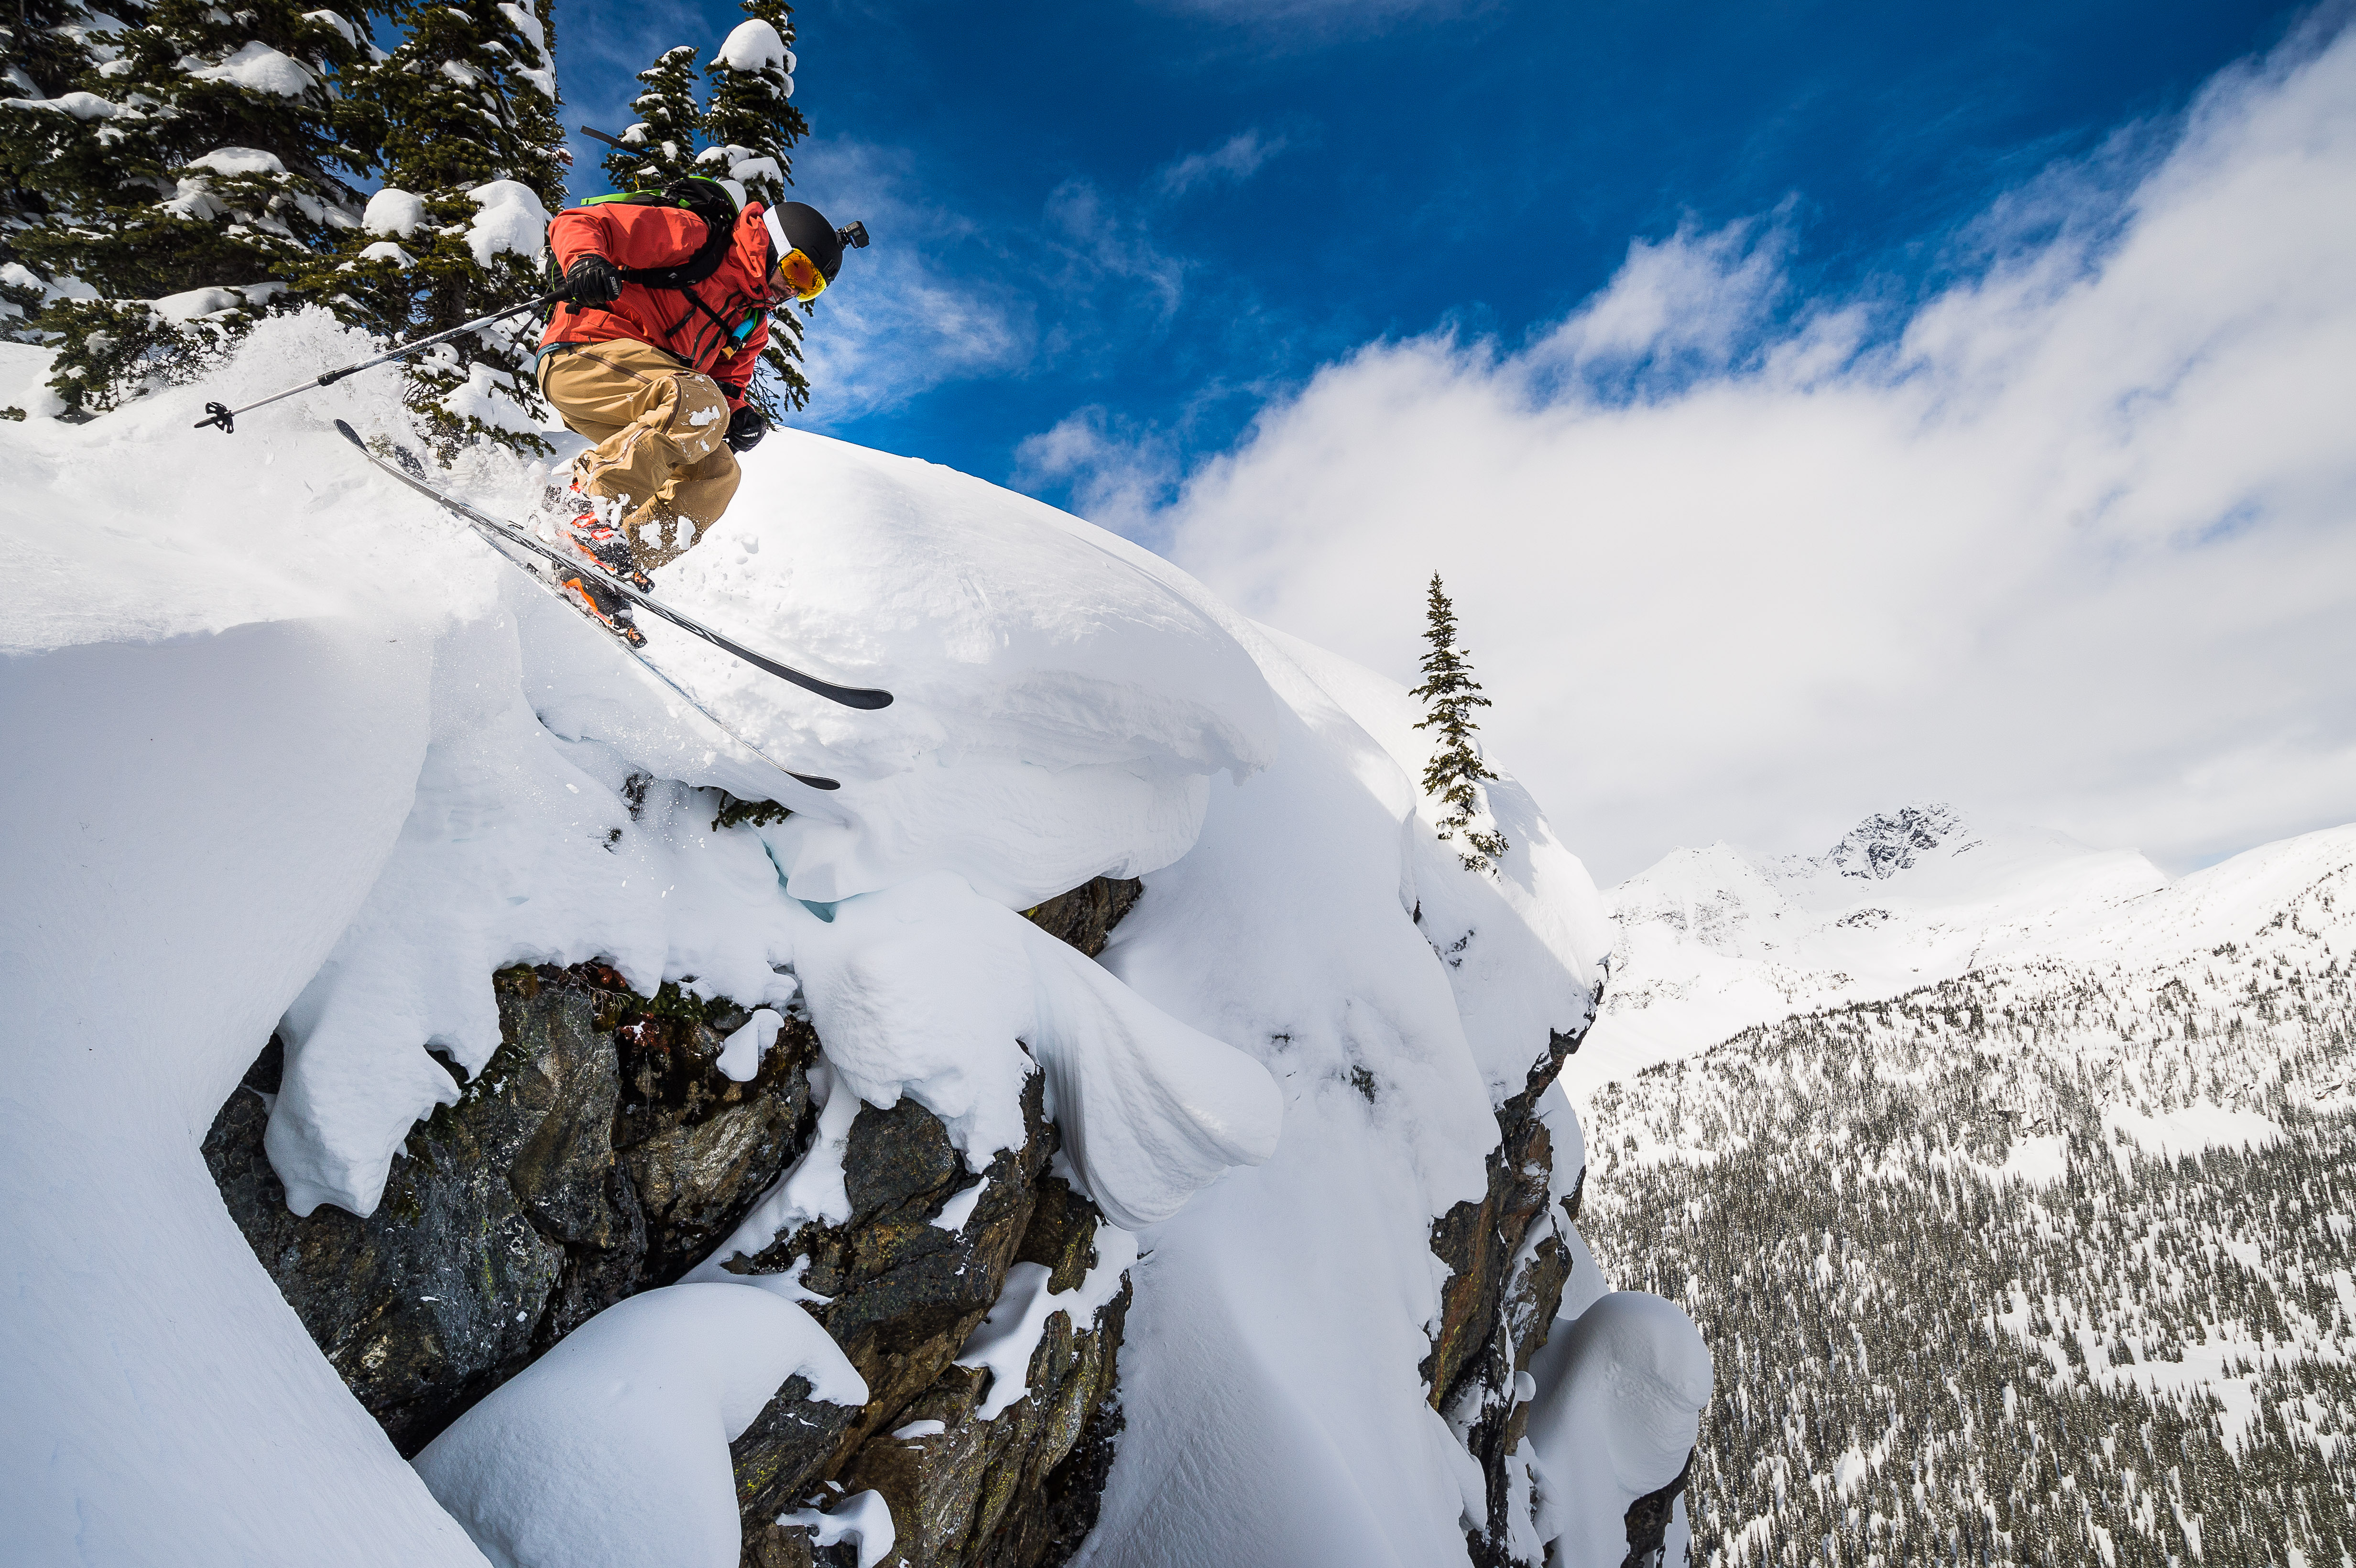 Andy Culp, Dropping Lines at Silver TIp Heli, Alain Sleigher Photo Credit